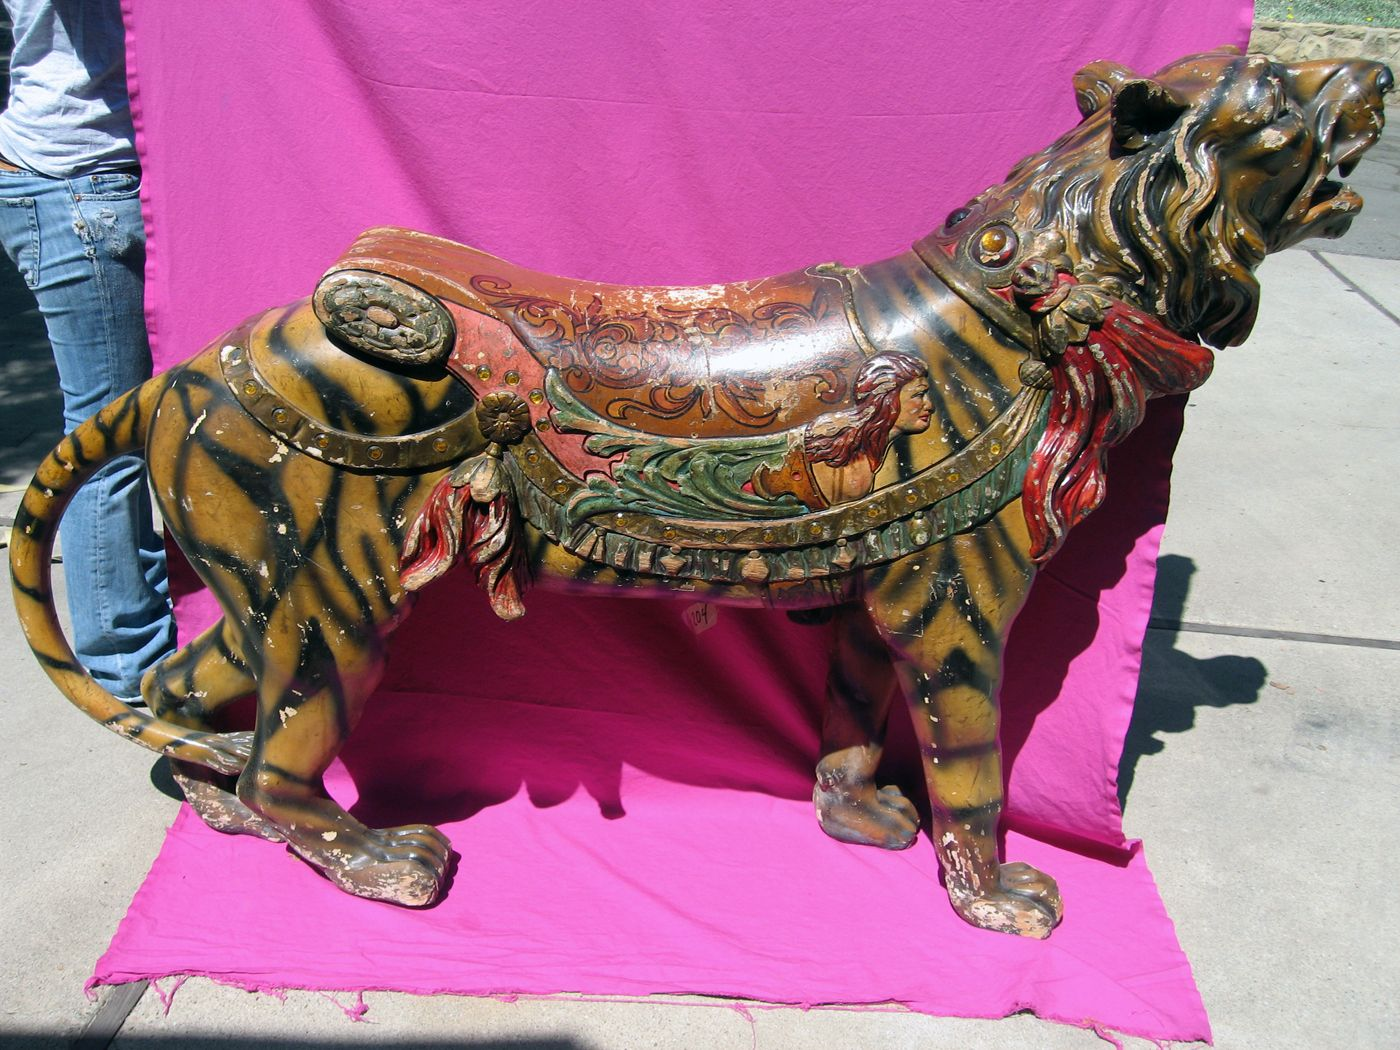 1924 Spillman Tiger from Lincoln Park Carousel in L.A.